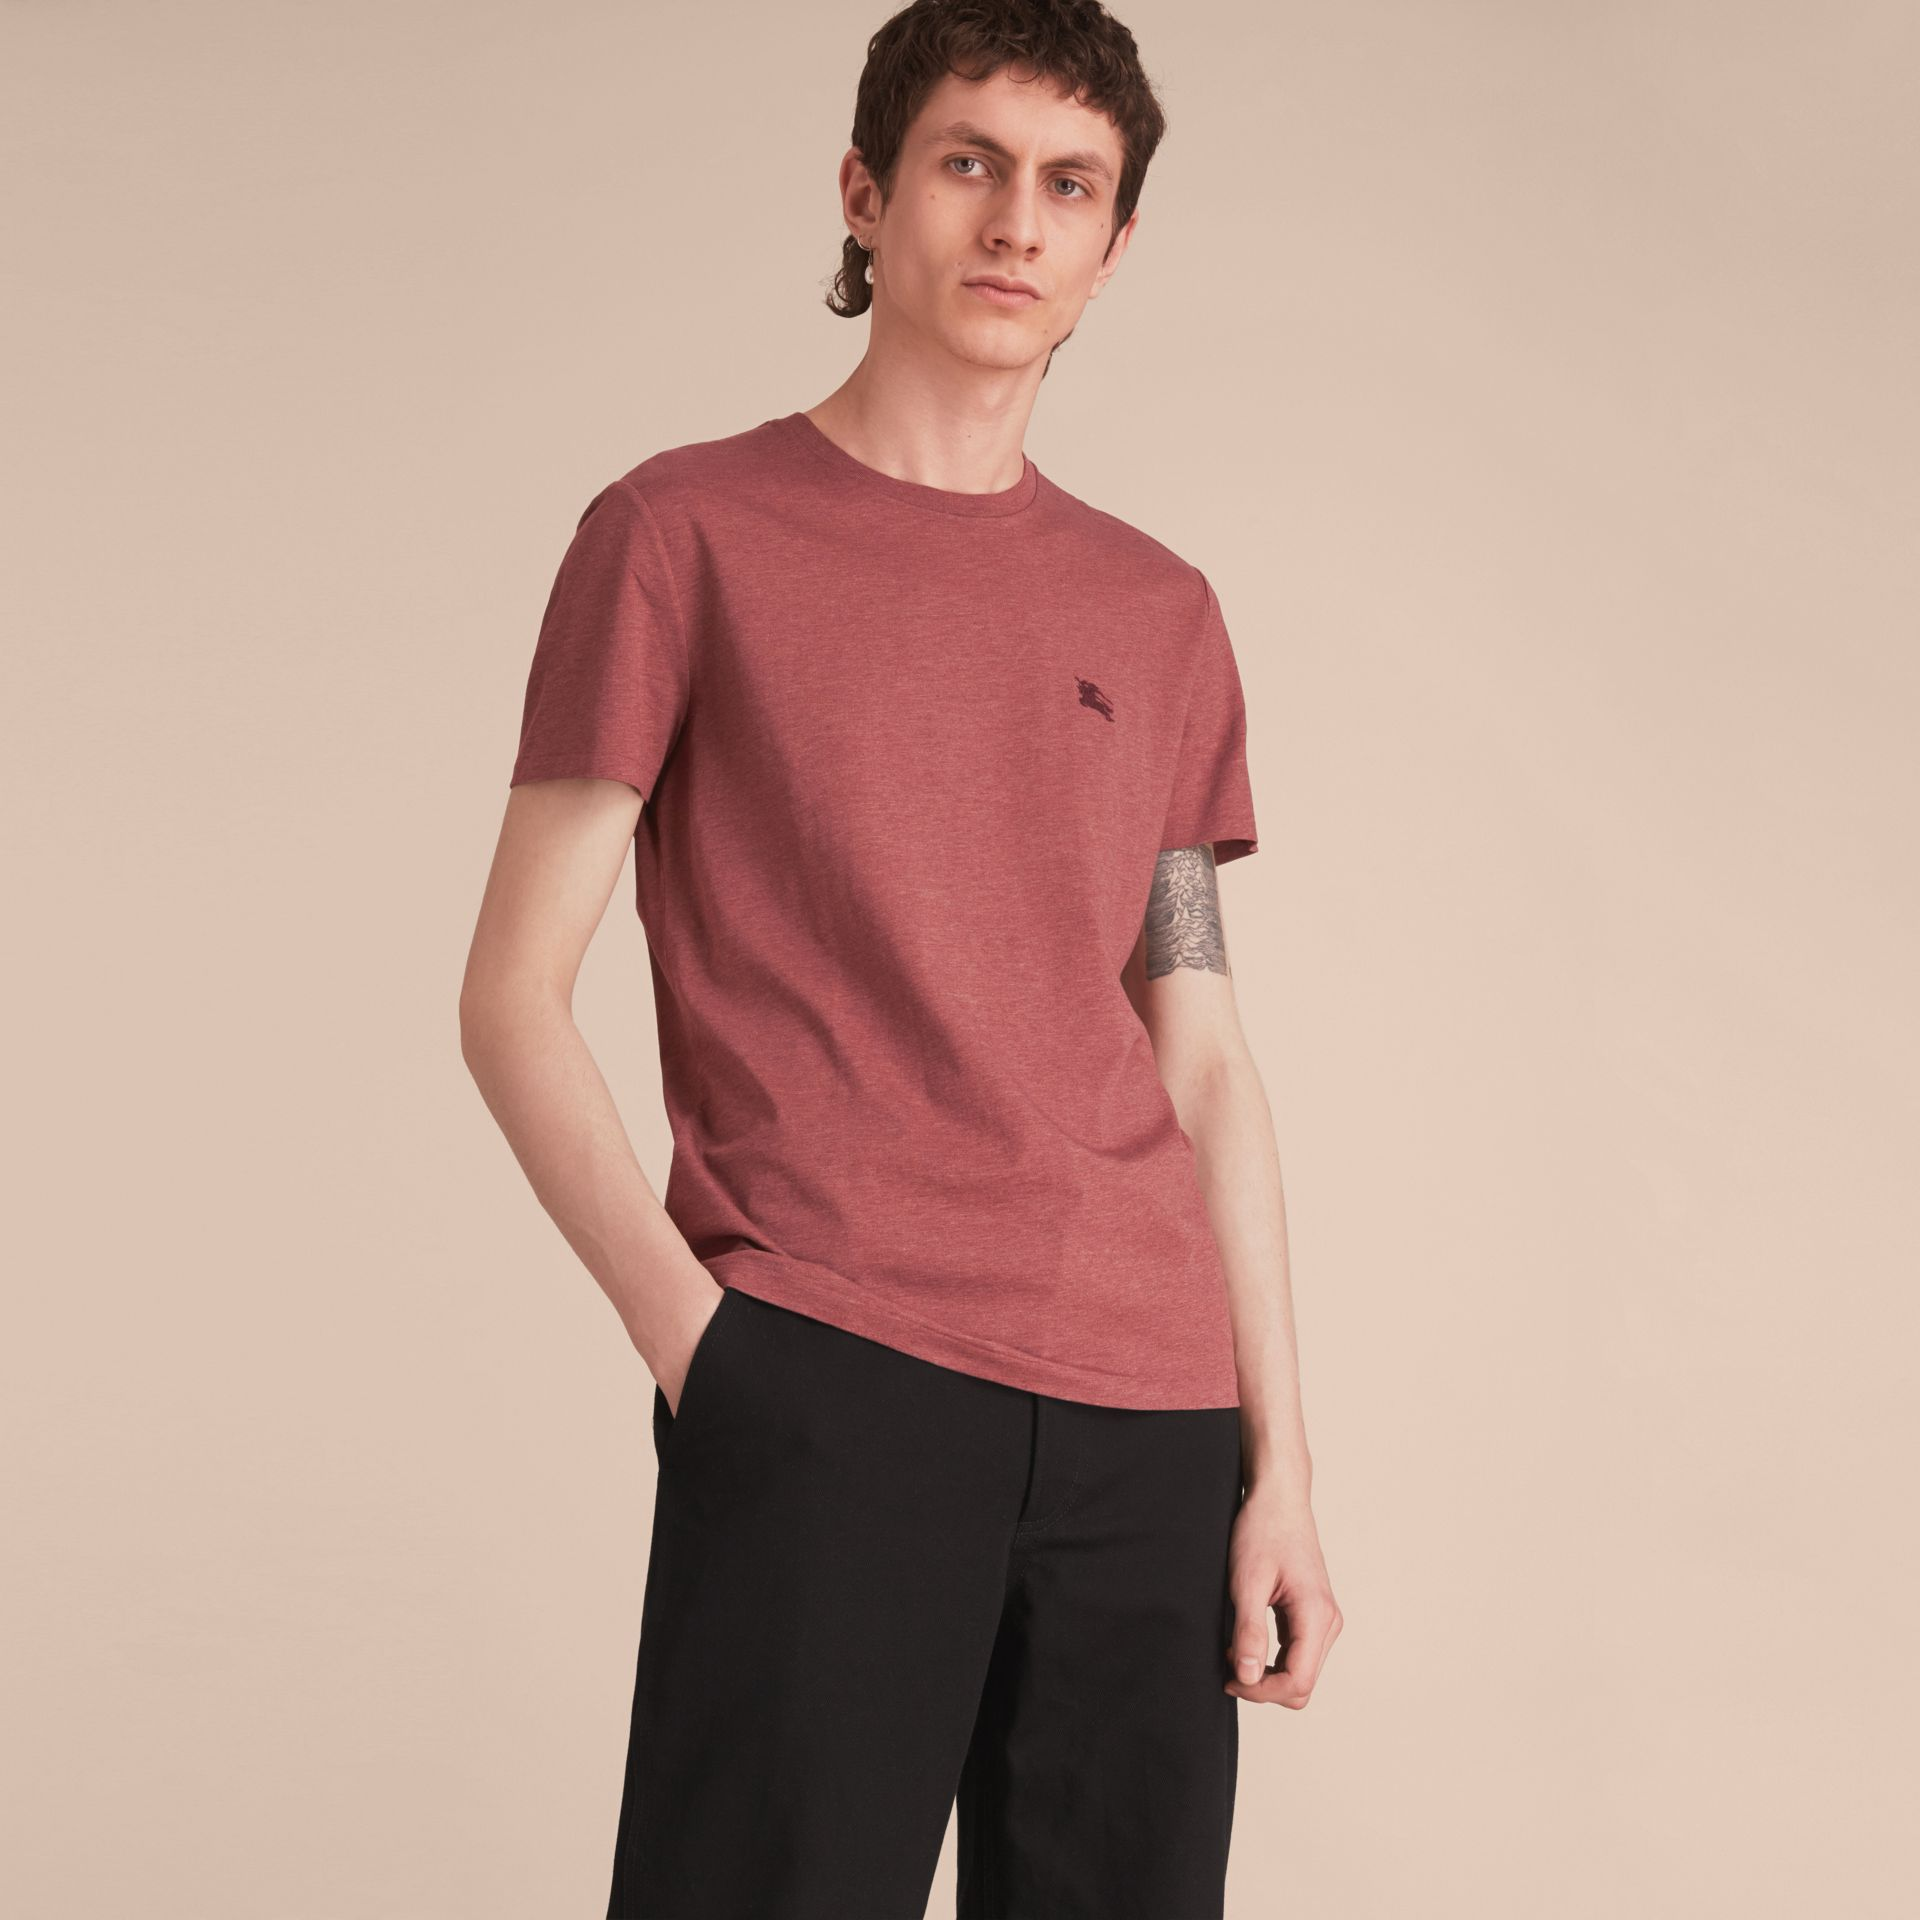 Cotton Jersey T-shirt in Russet Melange - Men | Burberry Singapore - gallery image 1